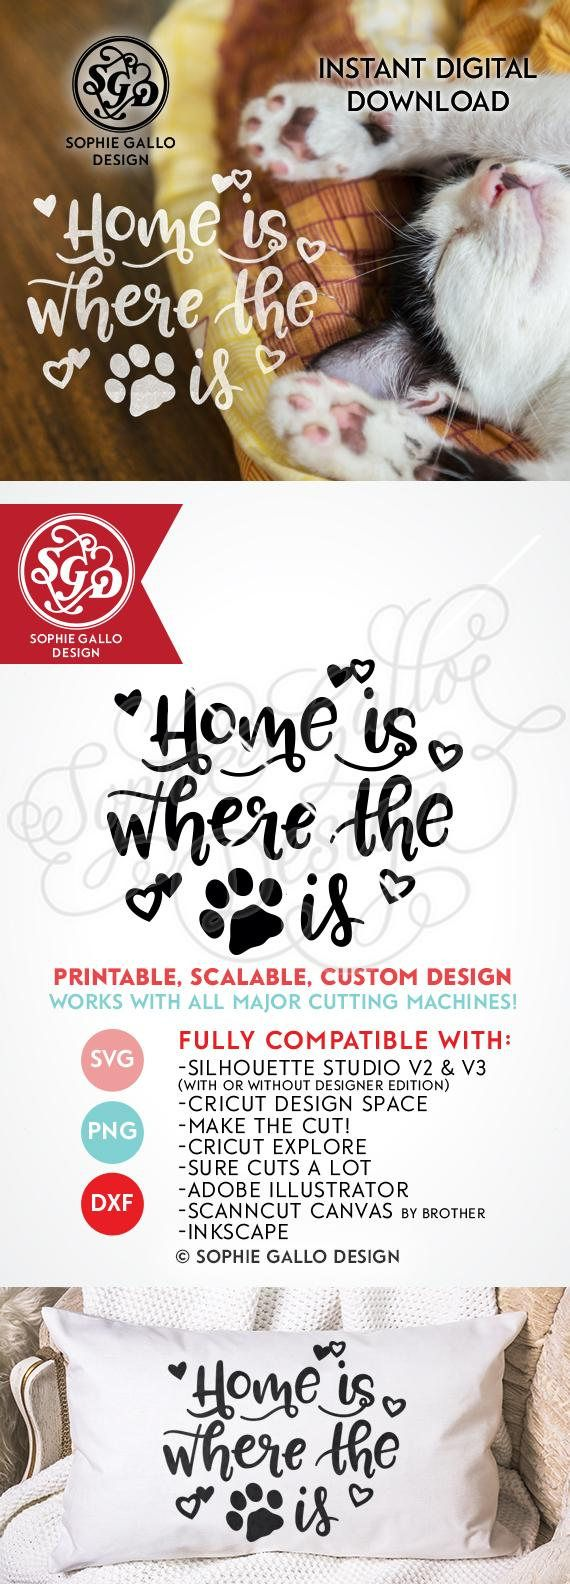 Home is where the Pet Is, Quote Cut SVG, PNG & DXF files instant digital download  WHAT YOU'LL GET ~ 3 files: 1 SVG file that is compatible with Silhouette Studio, Cricut Design Space, CorelDRAW, Adobe Illustrator, Inkscape, Making the Cut, Sure Cuts A lot, and various other vinyl cutting machines and software.  A DXF file (which is compatible with the basic Silhouette Studio program -- no upgrade to design studio necessary)!  1 PNG file that can be edited in Photoshop and other software....